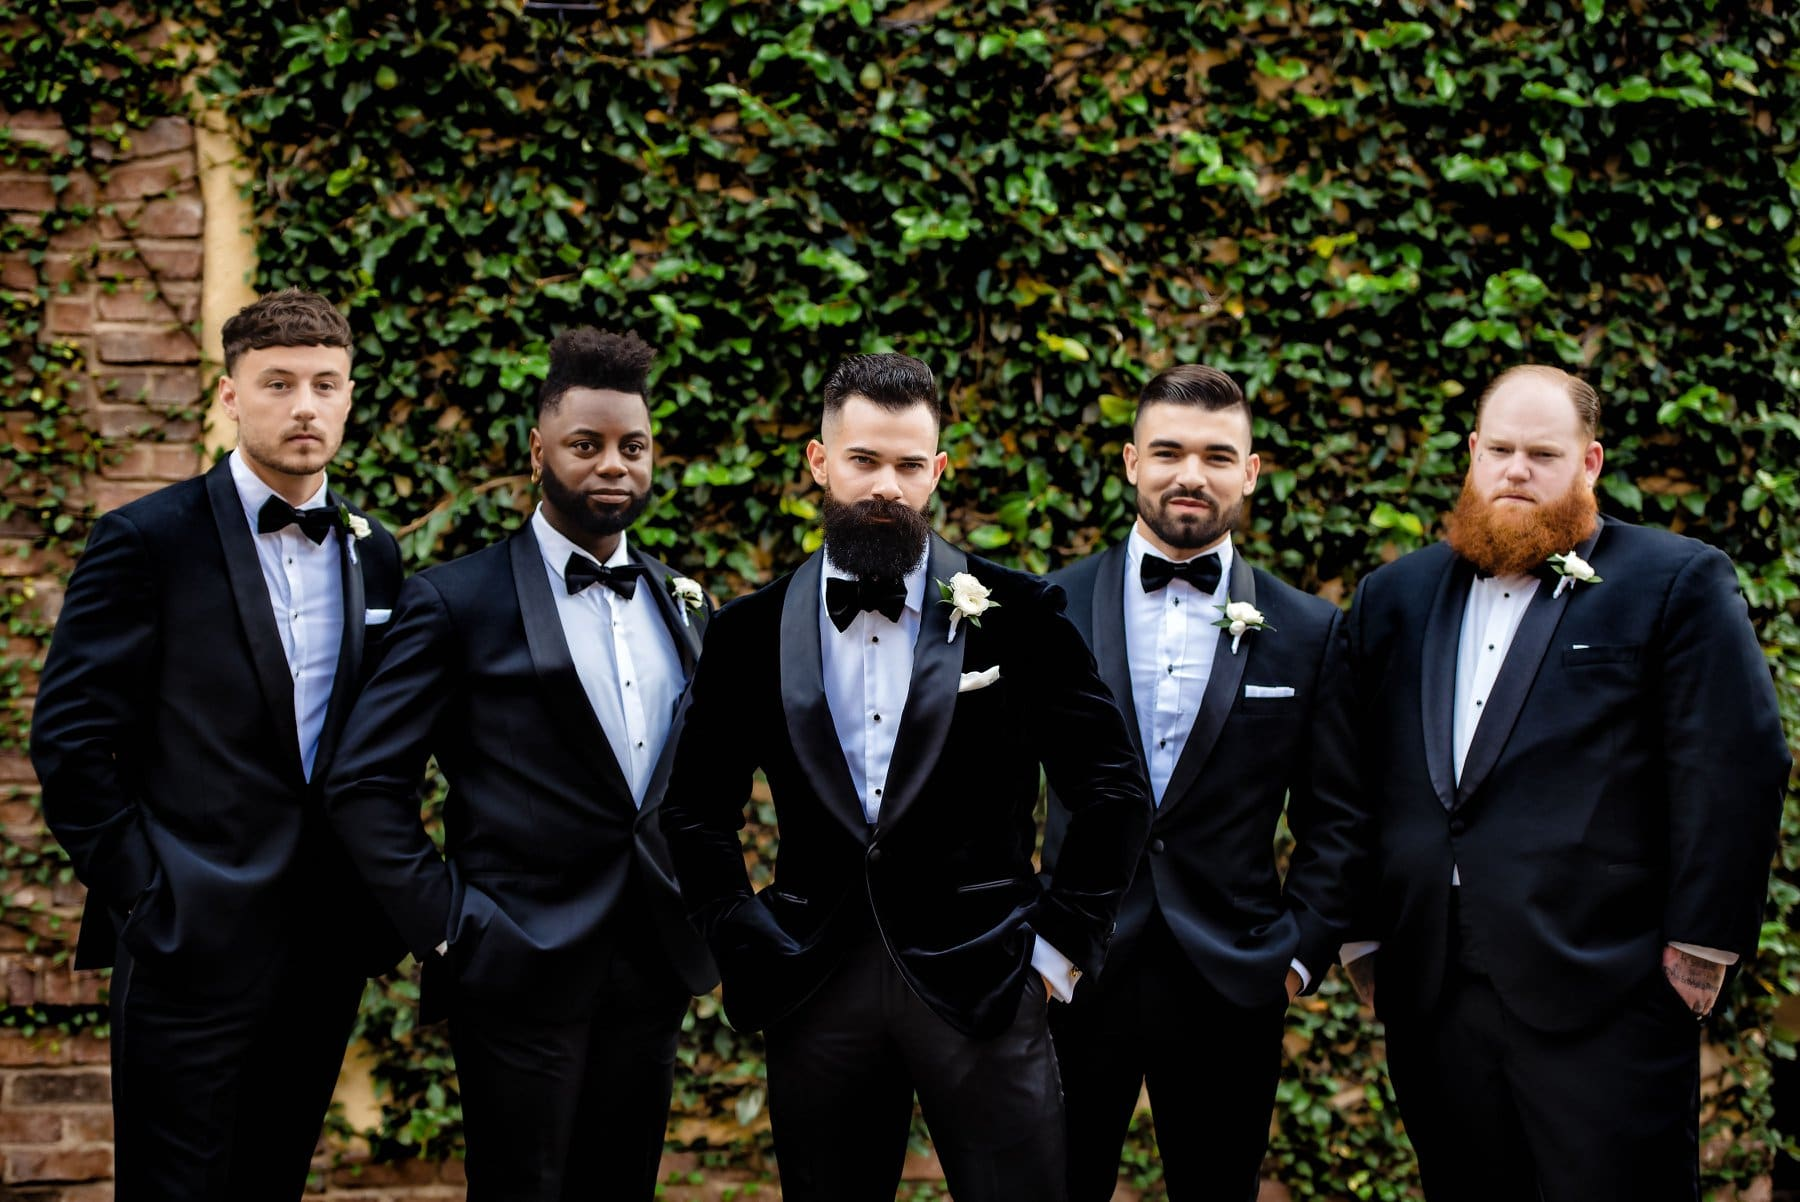 groomsmen standing in front of brick wall covered in vines